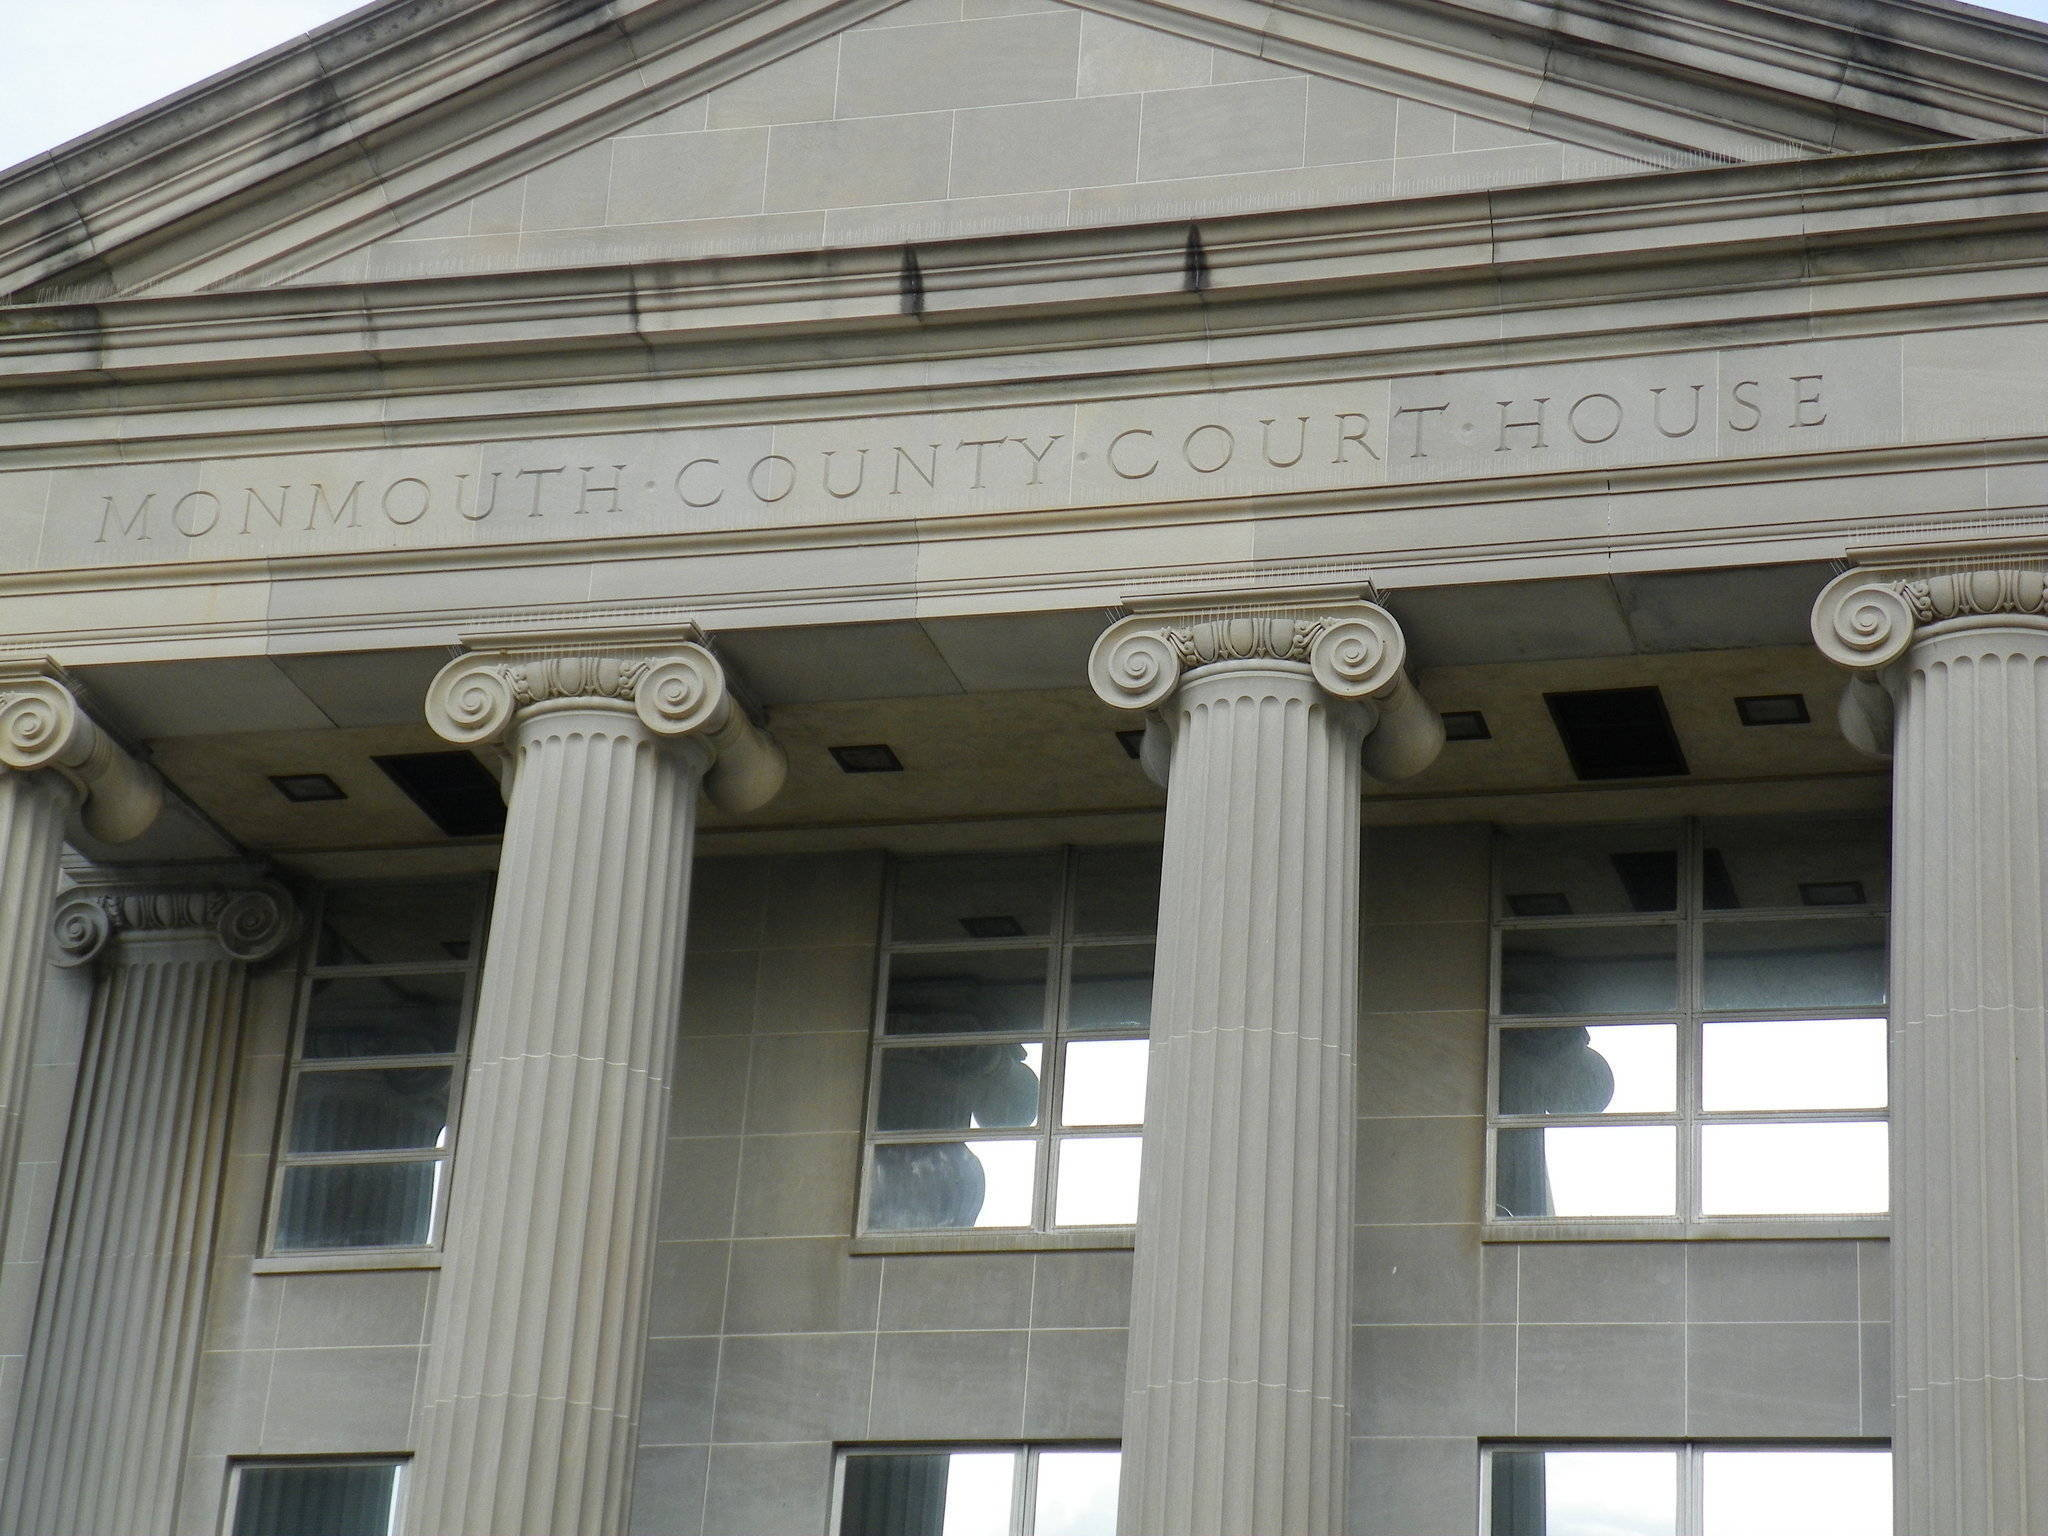 6c995f07728a6239f258_monmouthcountycourthouse.jpg